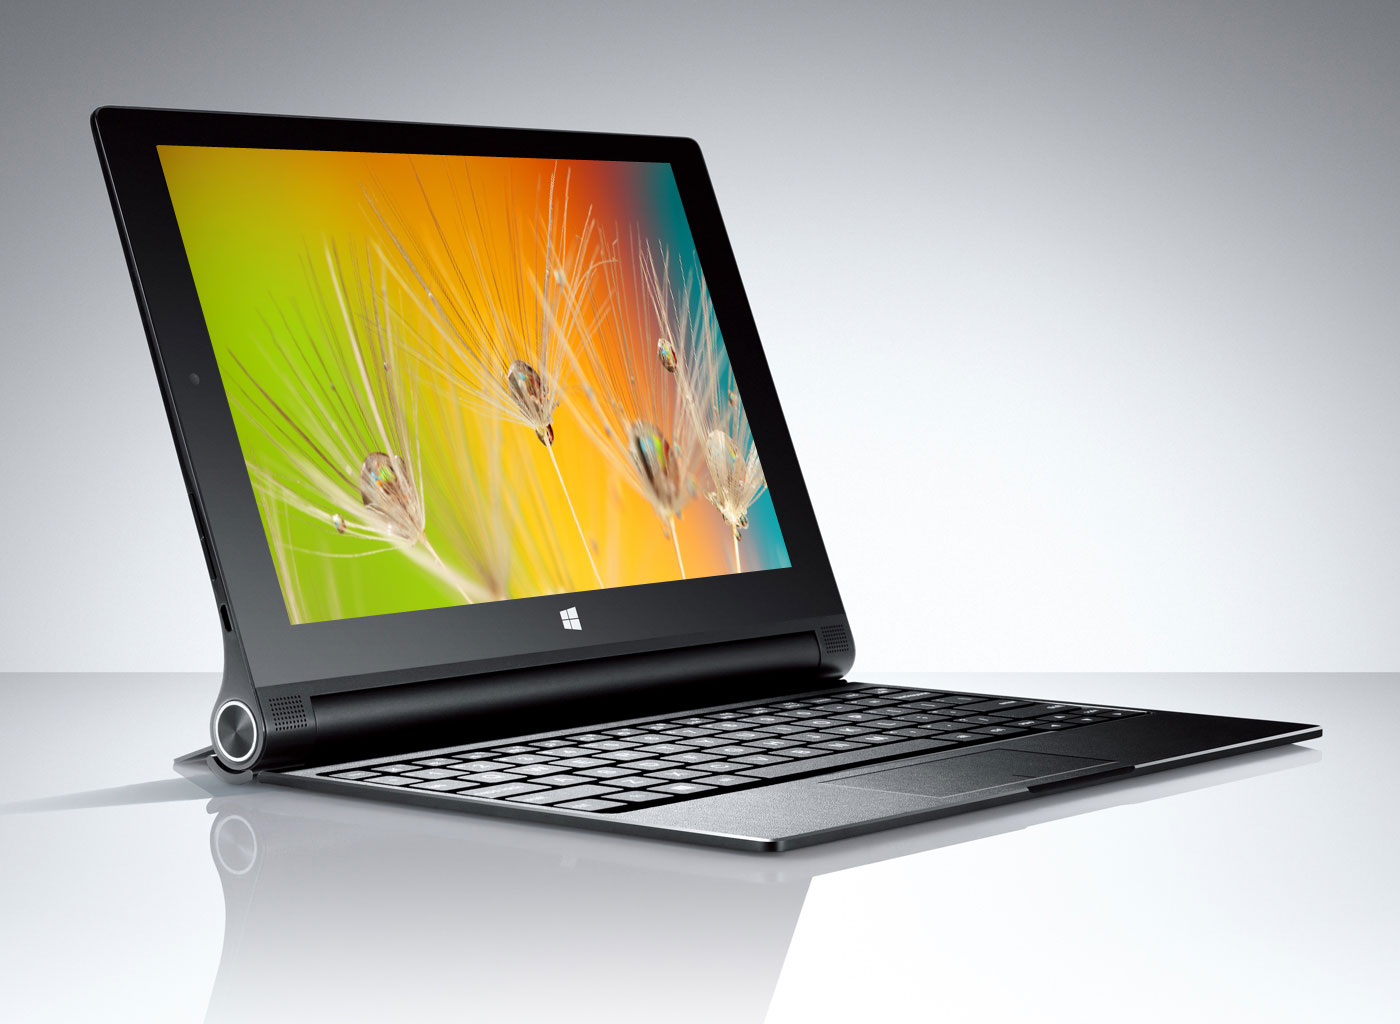 The 10 inch Windows version of the Yoga Tablet 2.